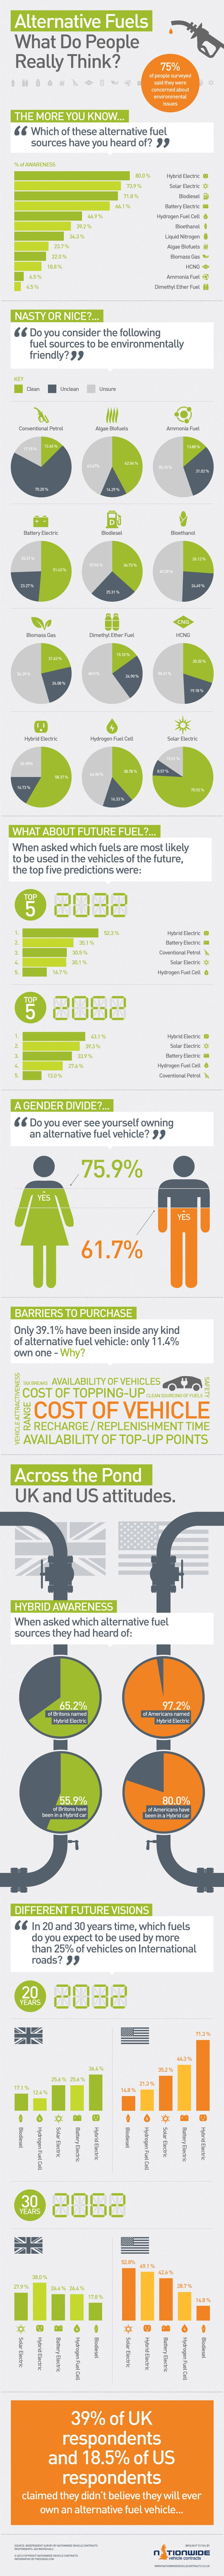 Alterntive fuel What do people really think? #infographic